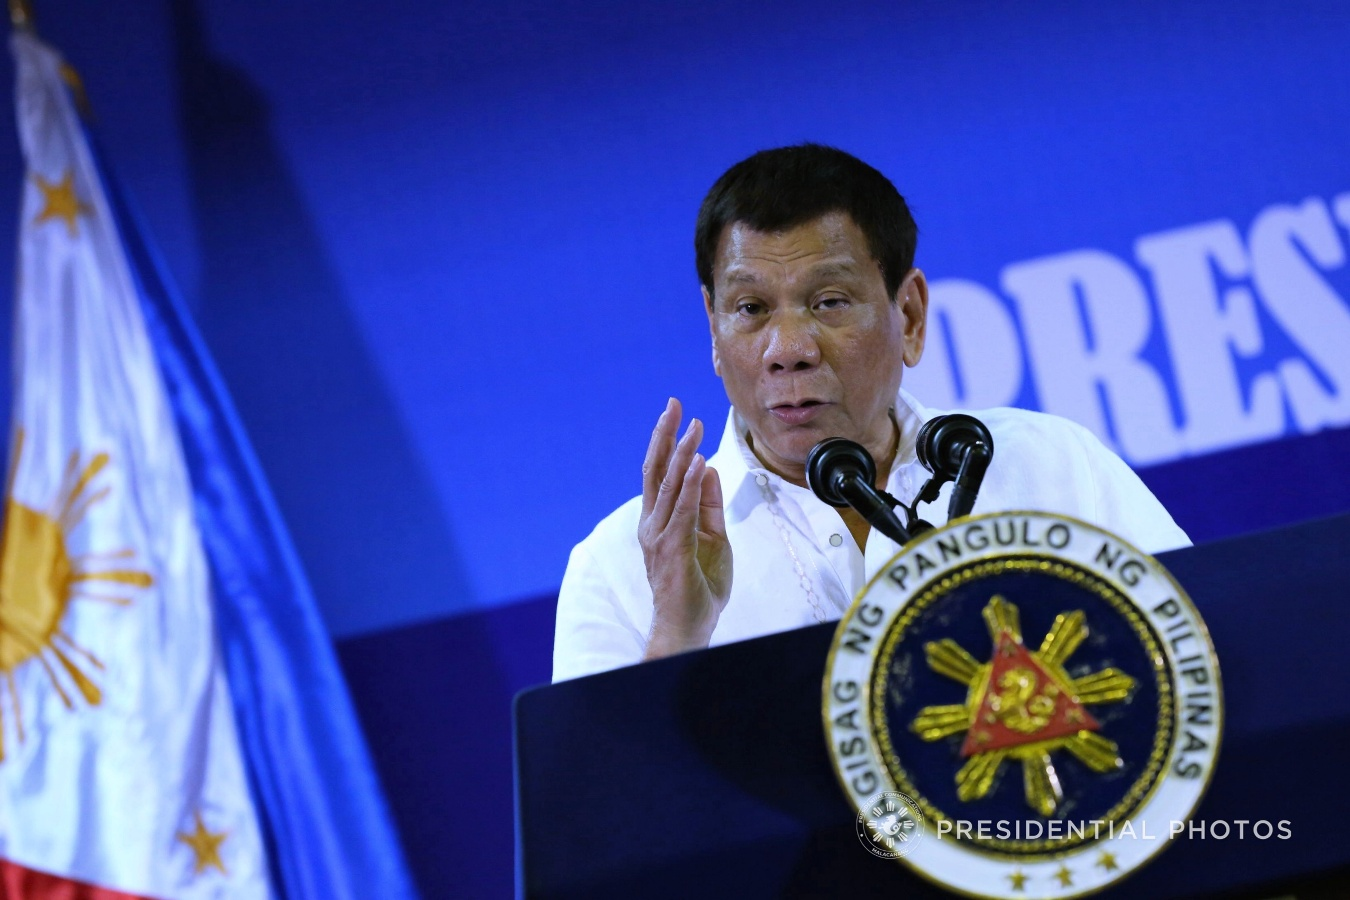 The Palace on Saturday, Dec. 23, attributed President Rodrigo Duterte's very good satisfaction ratings during the last quarter of 2017 to his administration's pro-poor initiatives. (PCOO PHOTO)